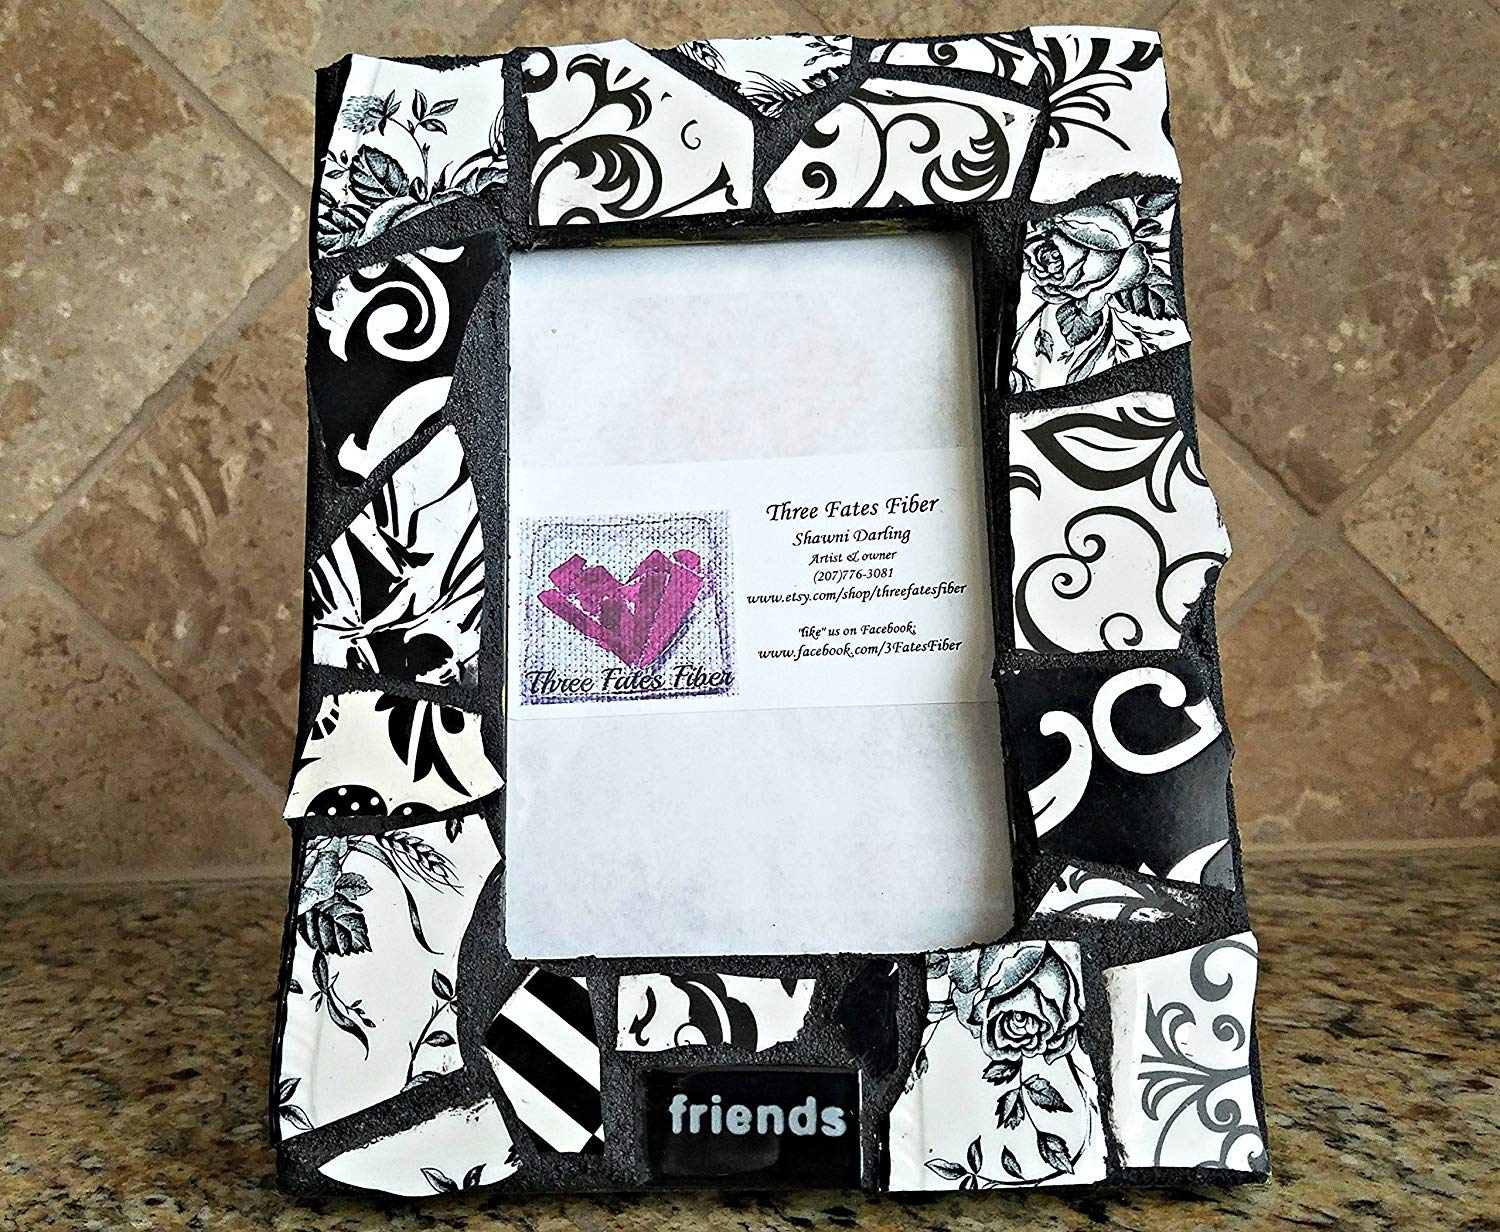 Cheap Picture Frame 6 X 9 Find Picture Frame 6 X 9 Deals On Line At